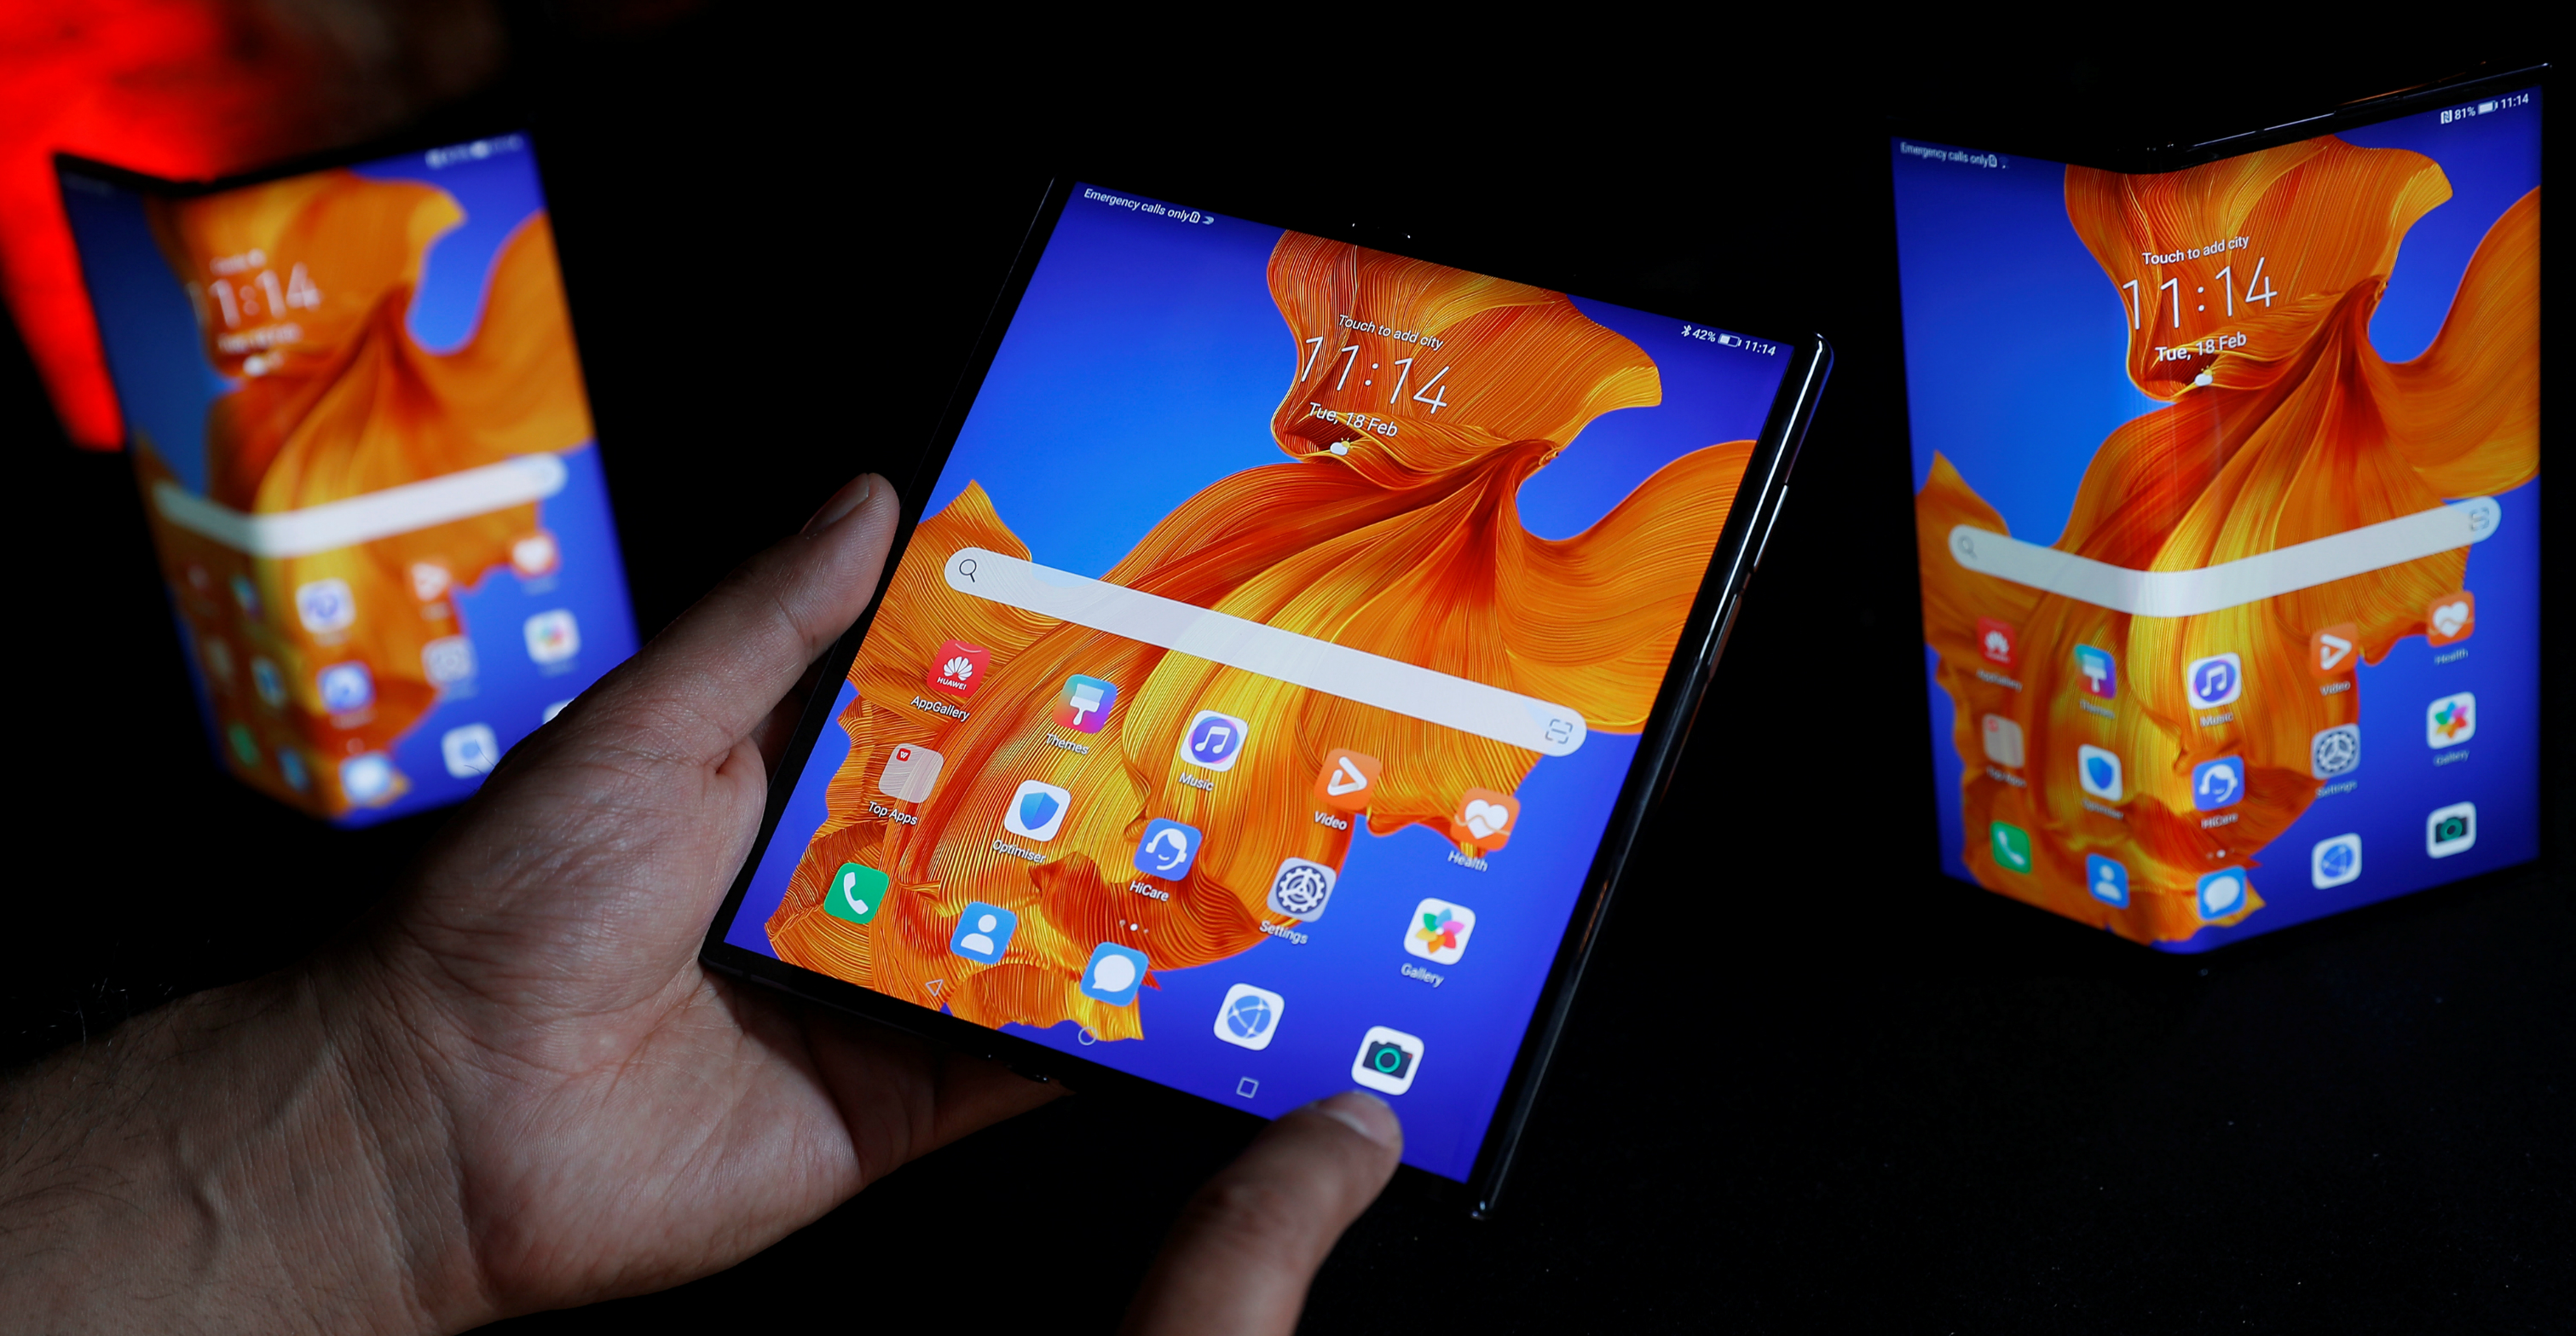 A Huawei employee demonstrates the features of the Mate XS, the company's latest foldable-screen smartphone model. Photo: Reuters